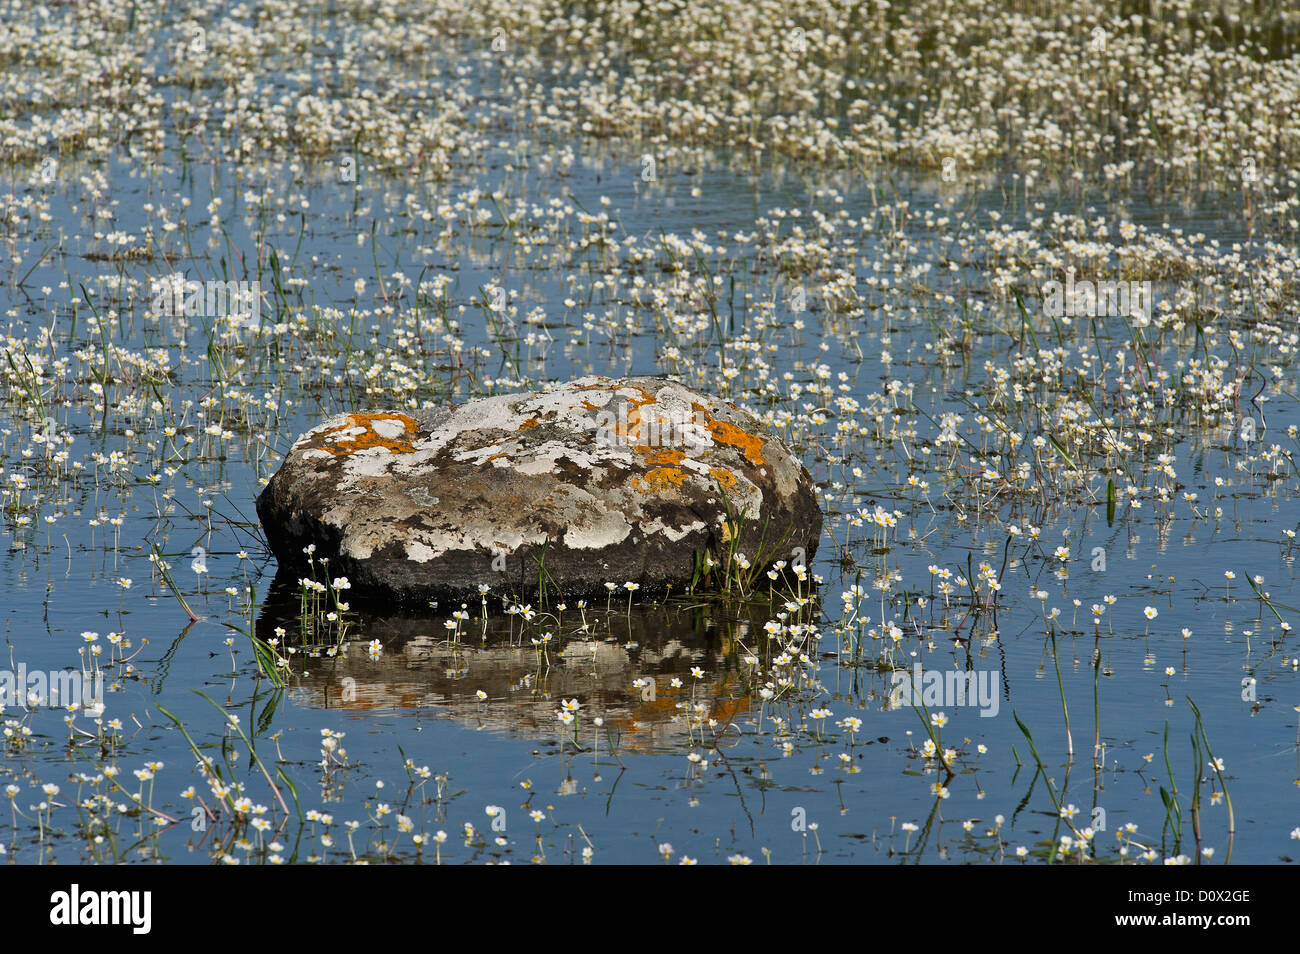 a rock covered with lichens in a pond of the Giara of Gesturi, Cagliari province, Sardinia, Italy - Stock Image